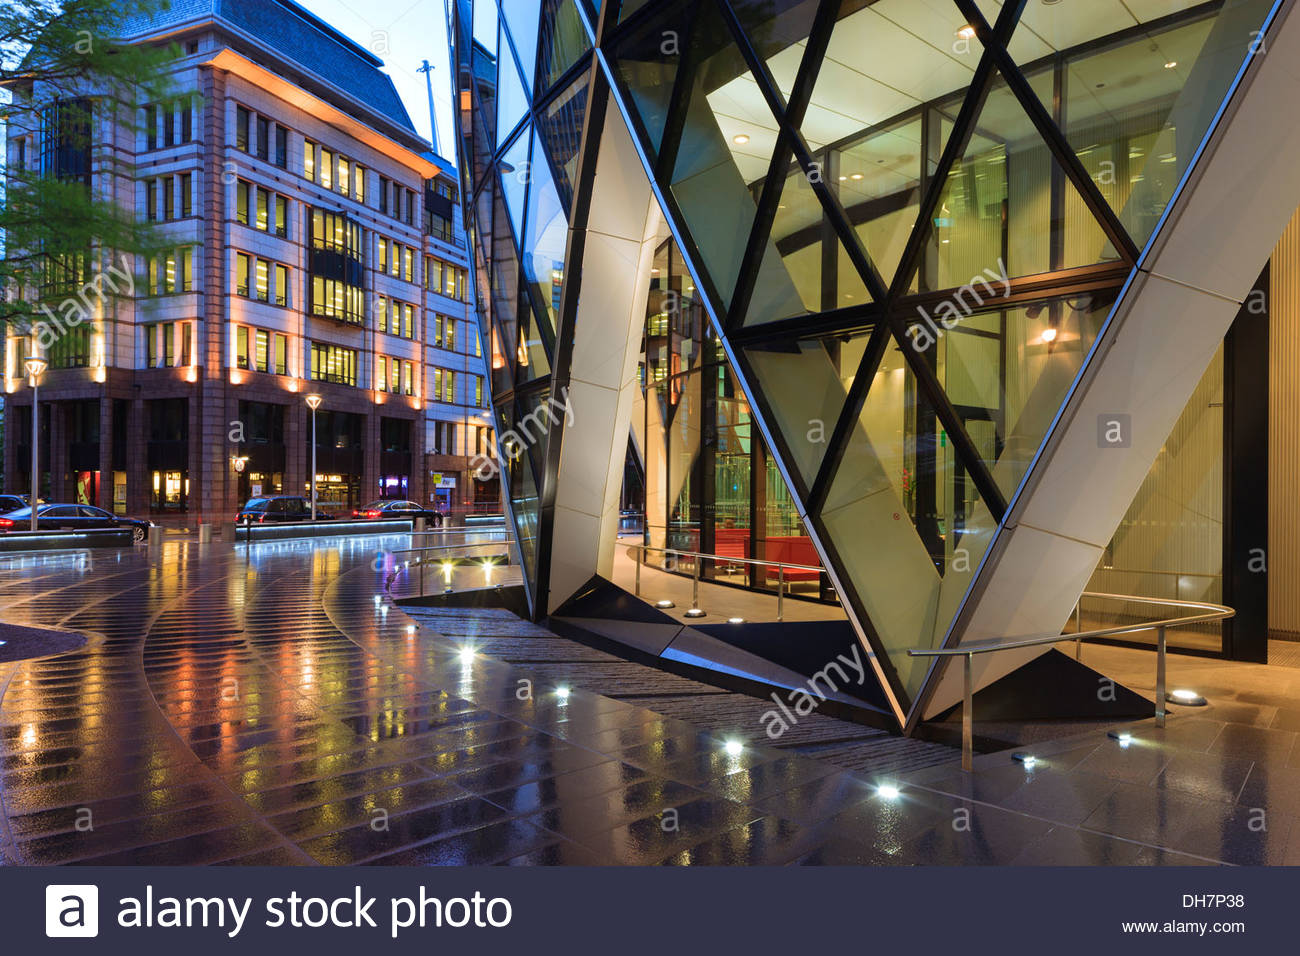 Gherkin 30 St Marys Axe Financial District London England - Stock Image